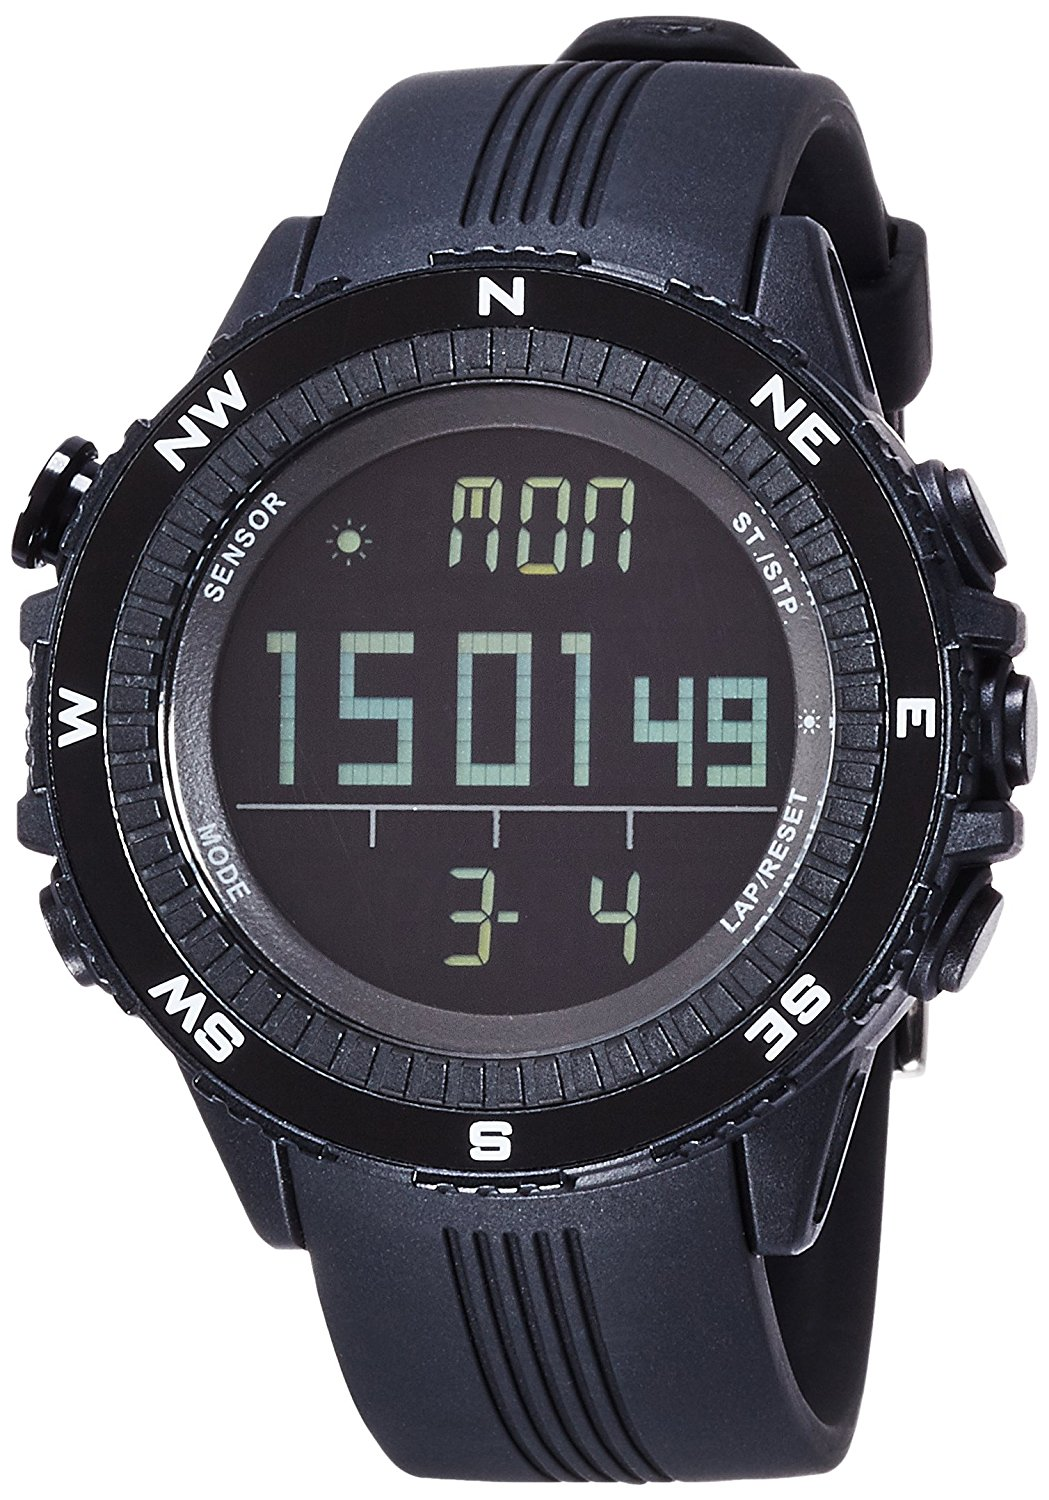 Top 10 Best Hiking Watches Under 100 Dollars in 2020 Reviews 7